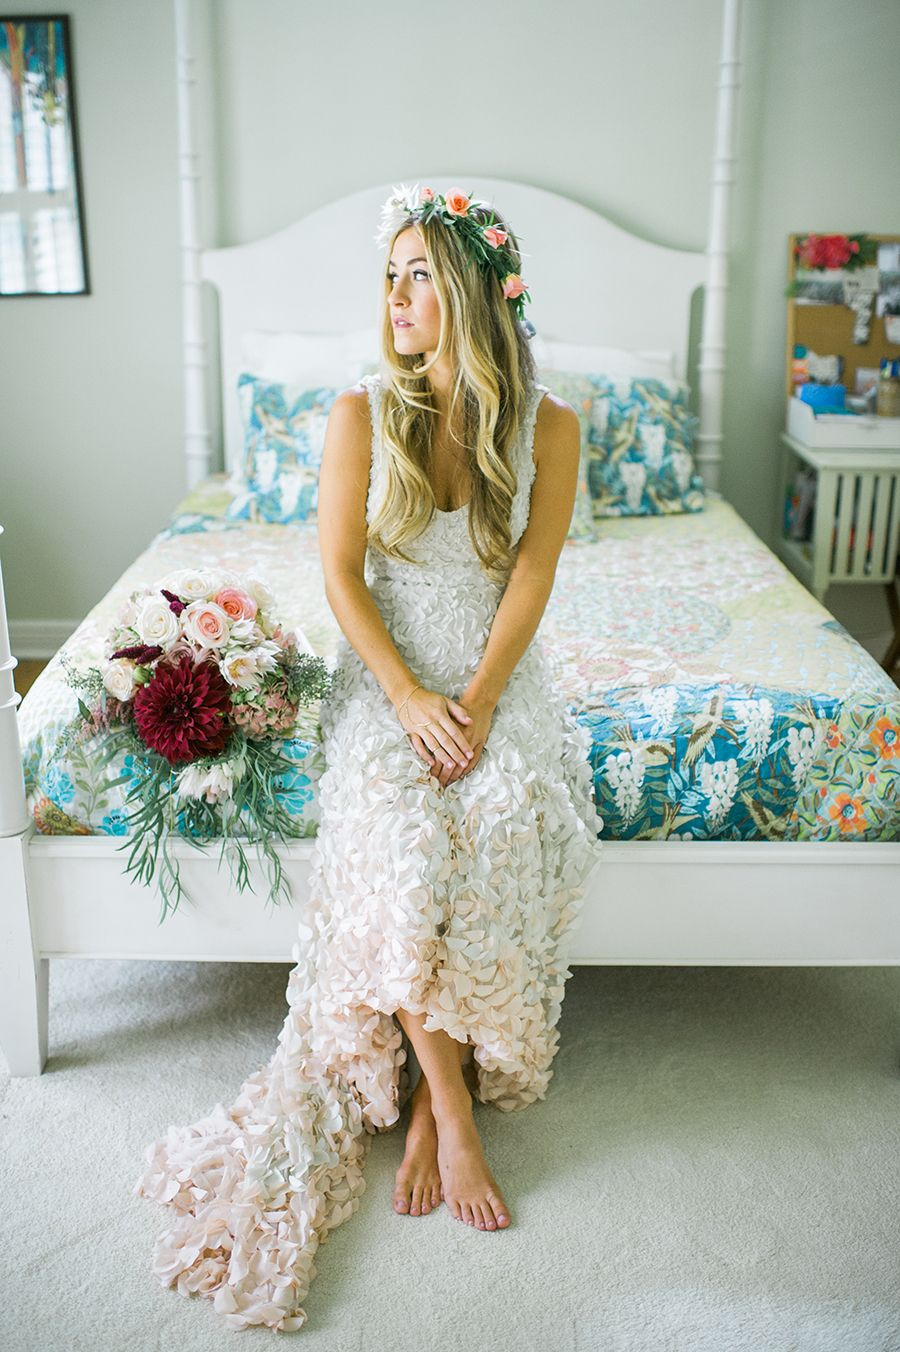 Weure majorly crushing on this brideus ombre blush petalcovered